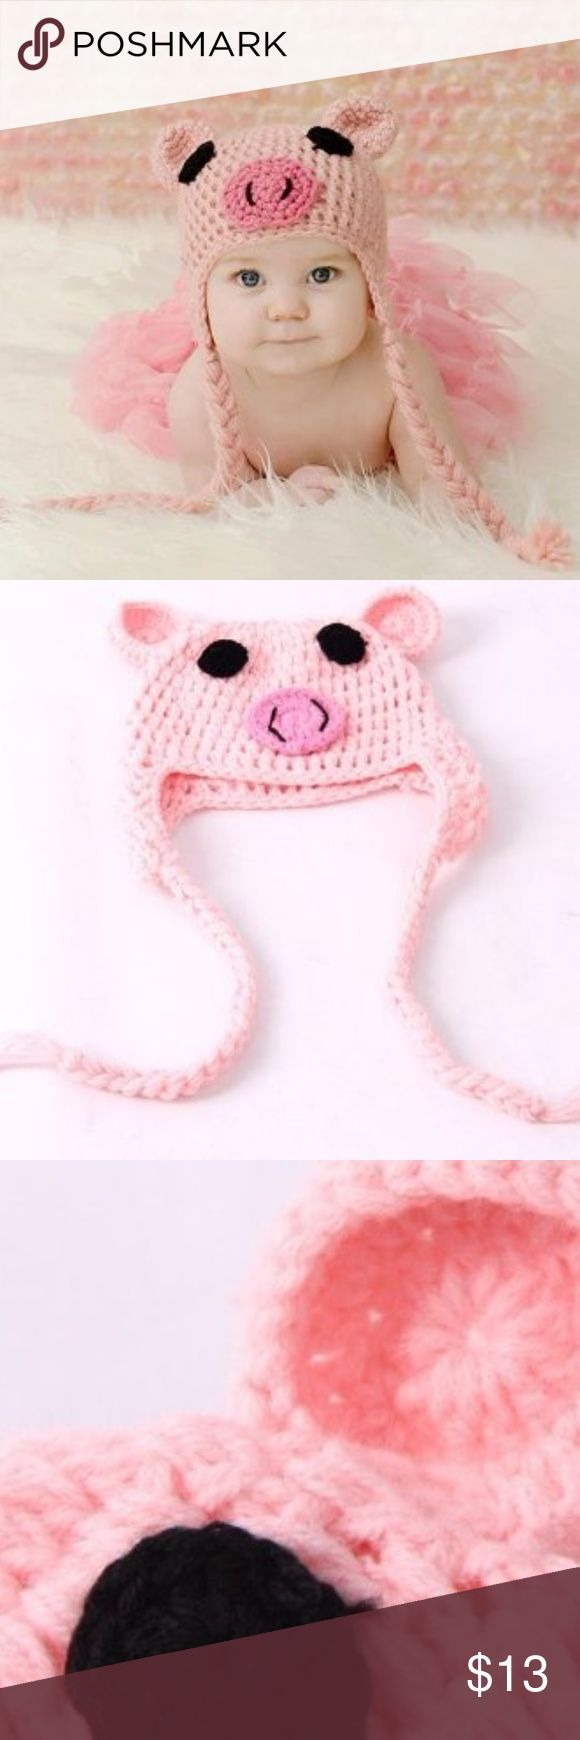 Crochet / Knit Piggy Hat / Cap Baby pink, pig hat is hand crocheted for your baby girl.  The baby piggy hat is made of a soft pastel pink acrylic yarn. The hat features dark pink circle nose with black and two black eyes.  The hat will fit most babies ages 0-12 months and will stretch as baby grows! None Accessories Hats